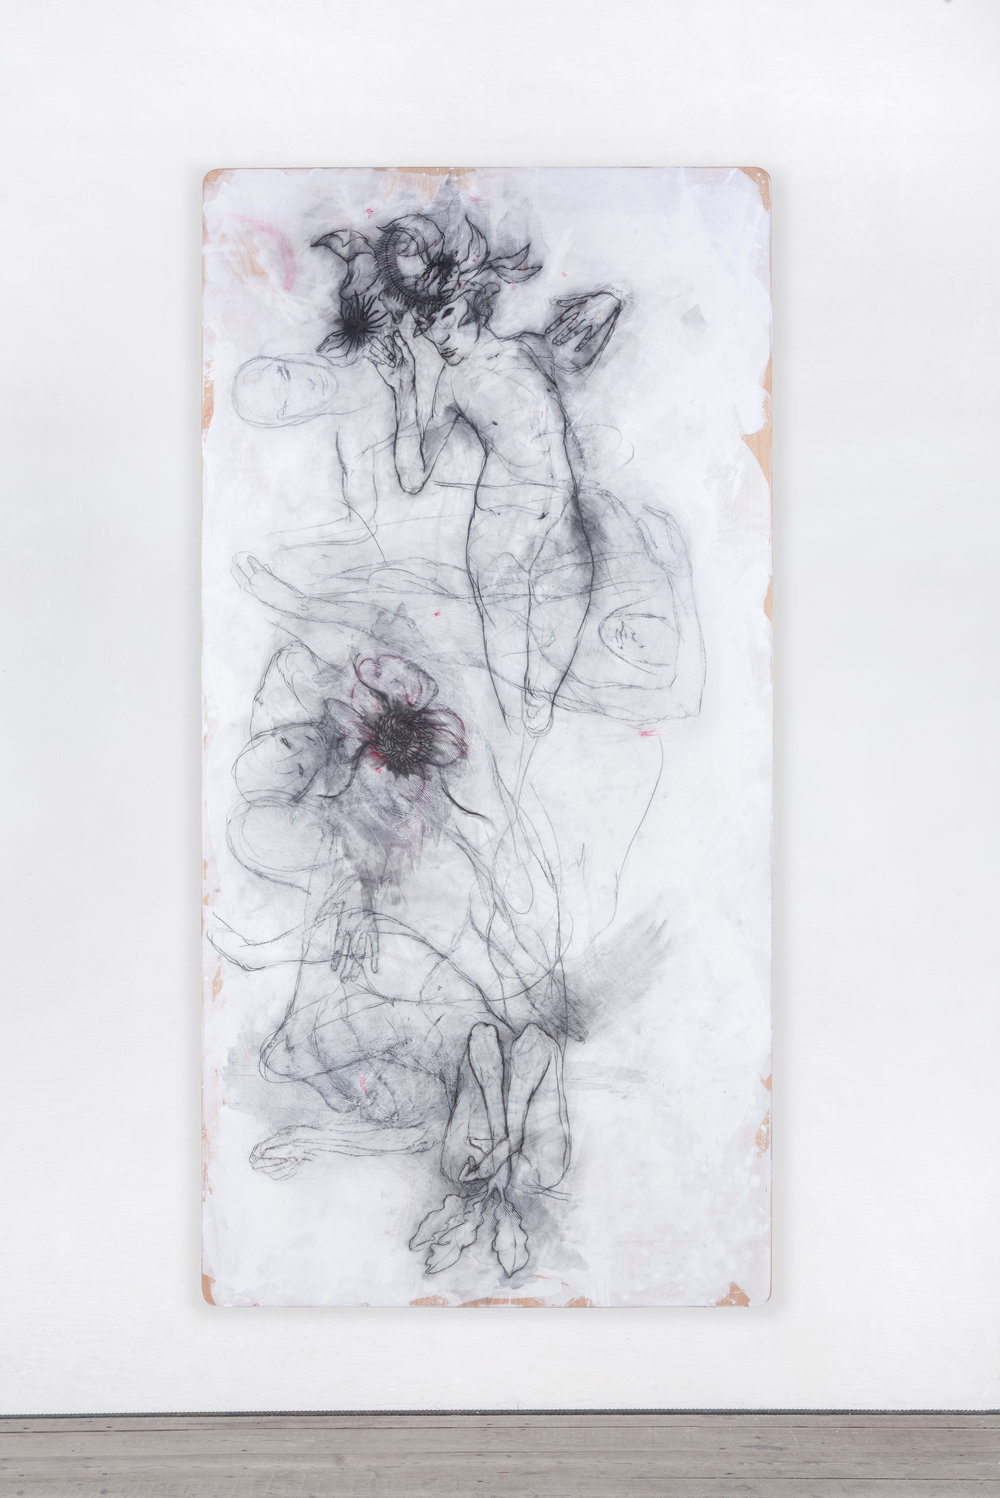 Peter Senoner, Botanicalirious I, 2017, graphite and pigment on beech, 250 x 125 x 4 cm